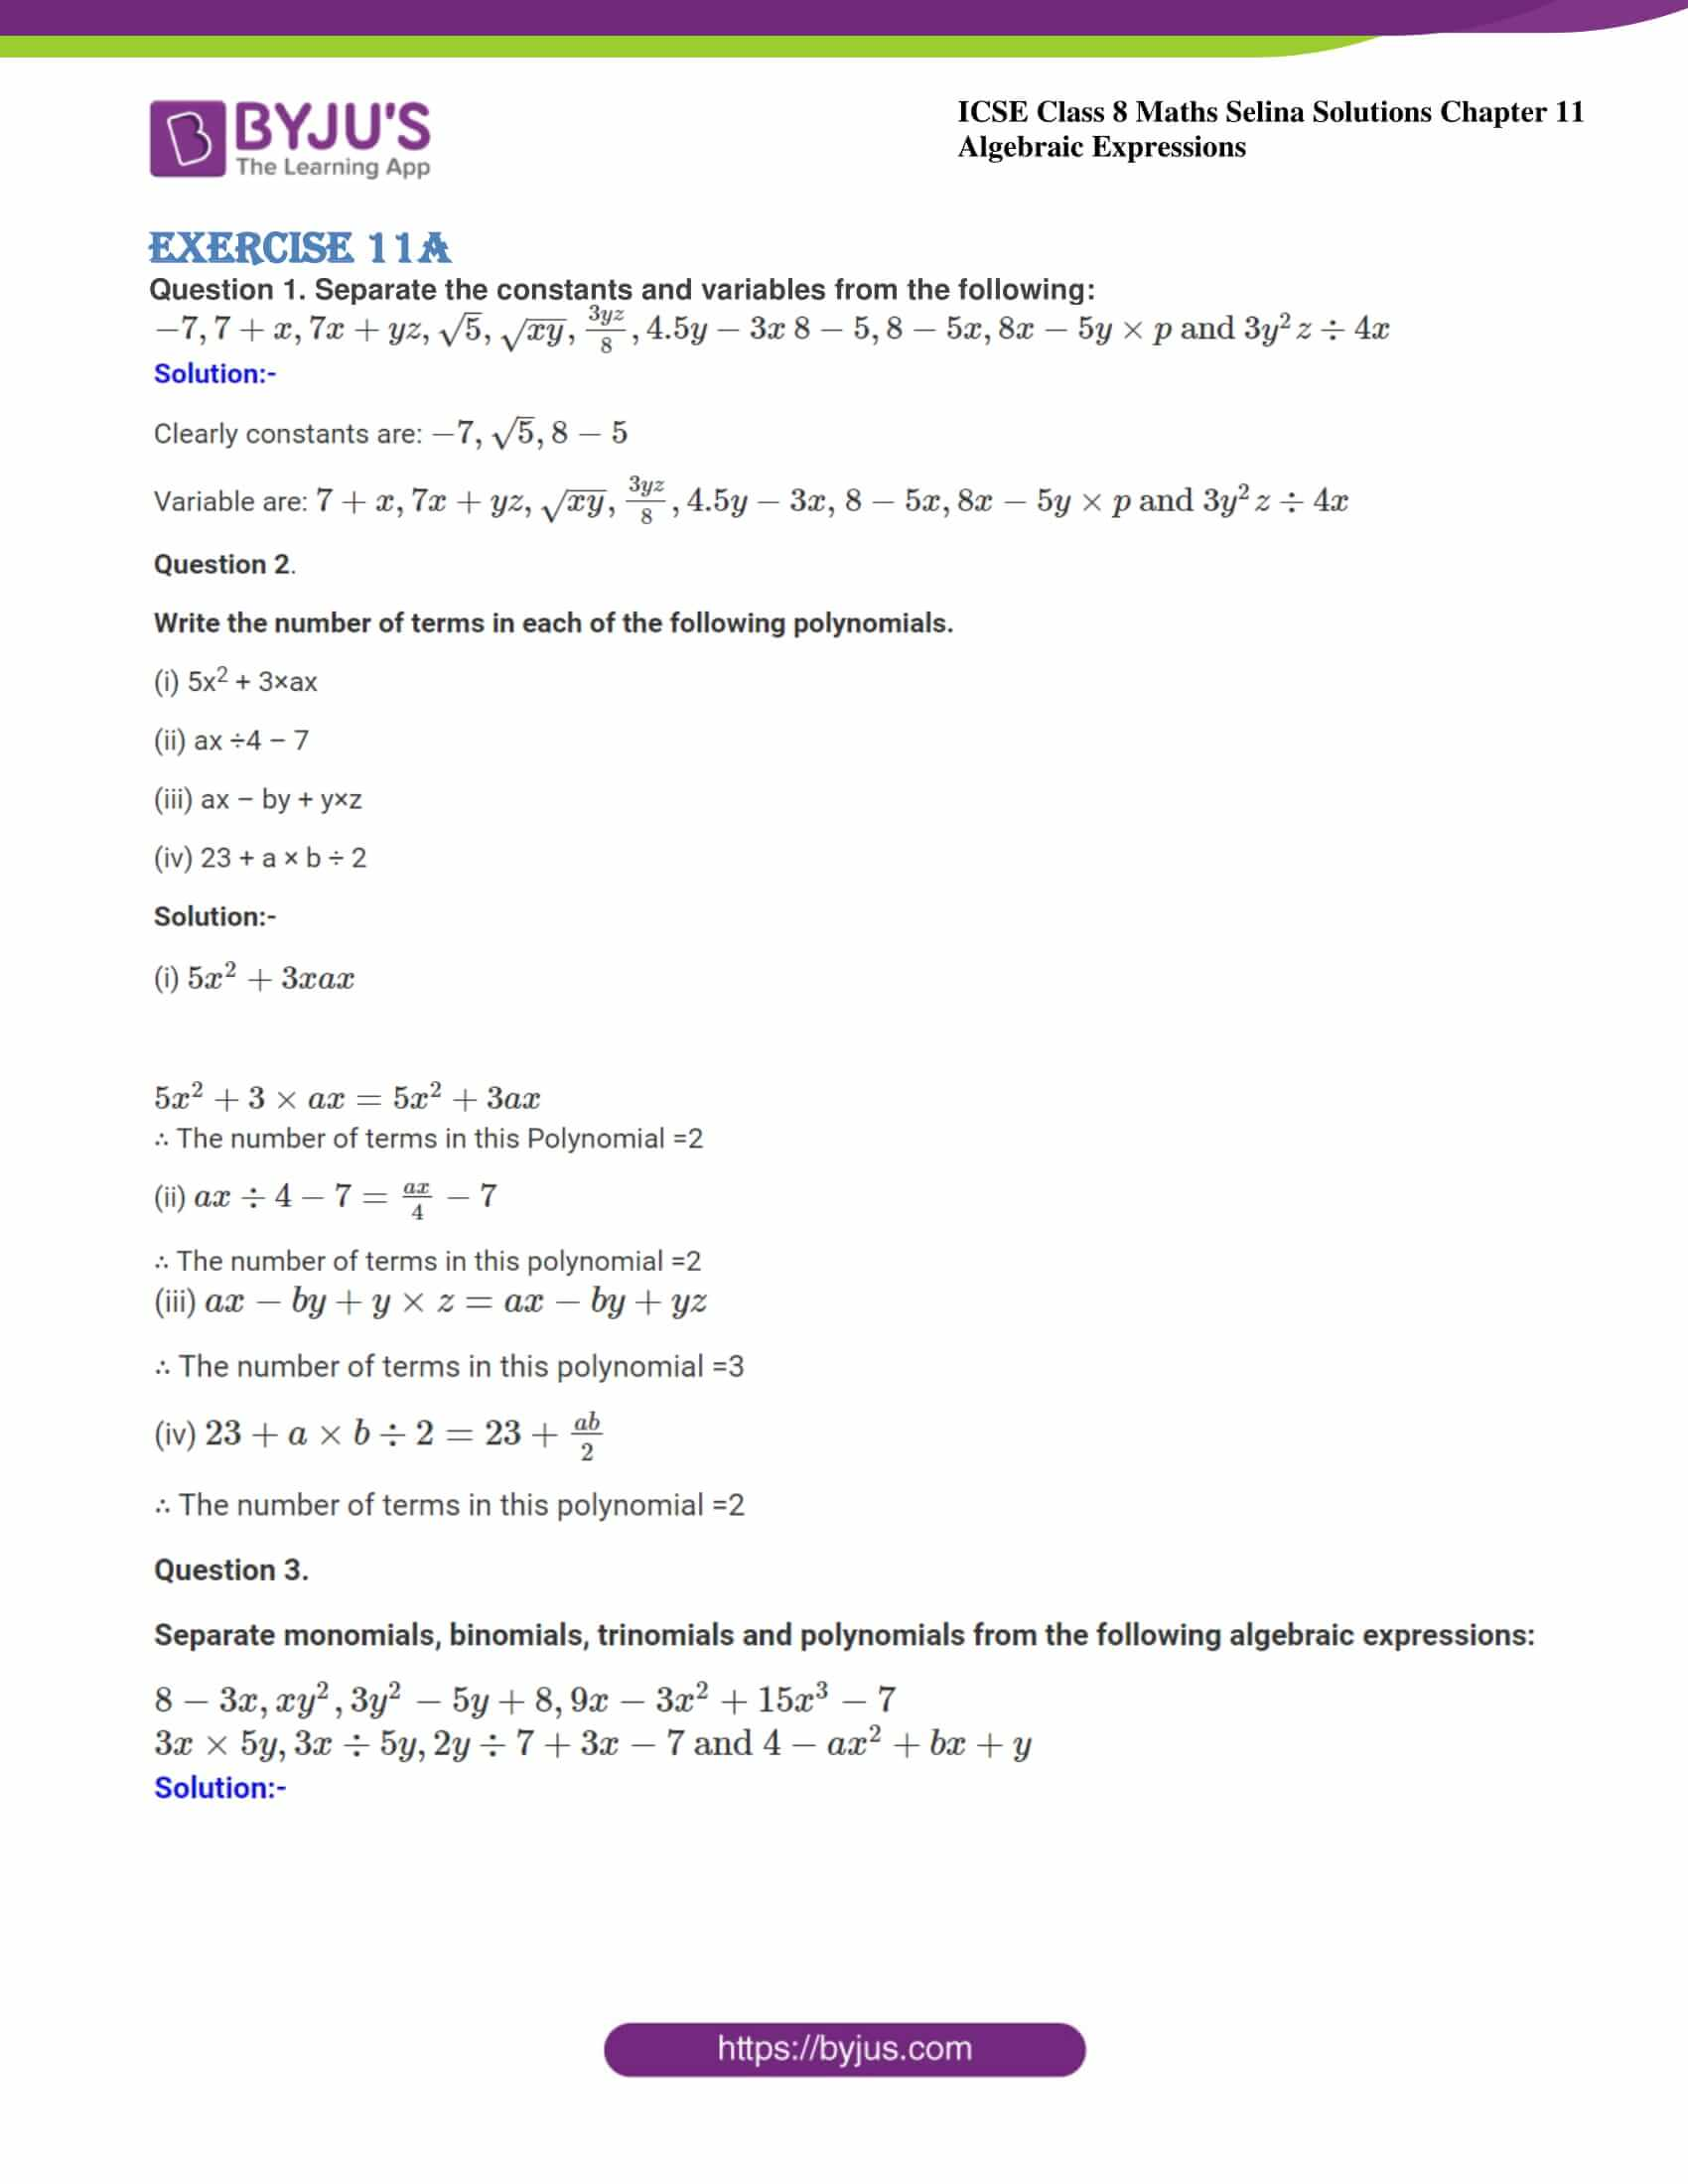 icse class 8 maths may3 selina solutions chapter 11 algebraic expressions 01